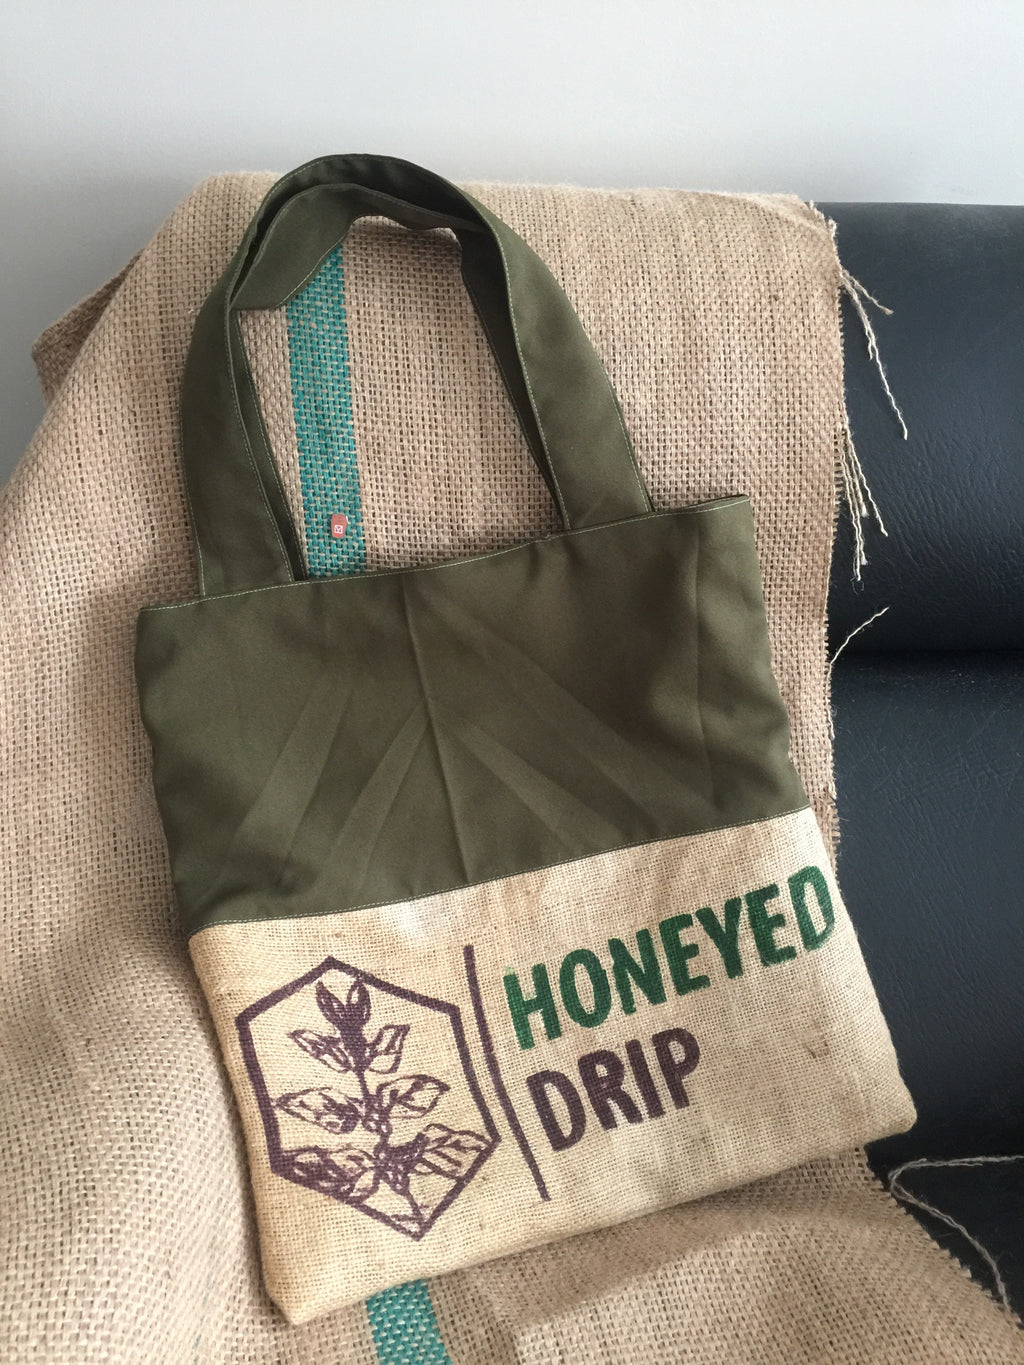 TOTEdo Na TOTEs Bag - Yardstick Coffee Collab - Honeyed Drip